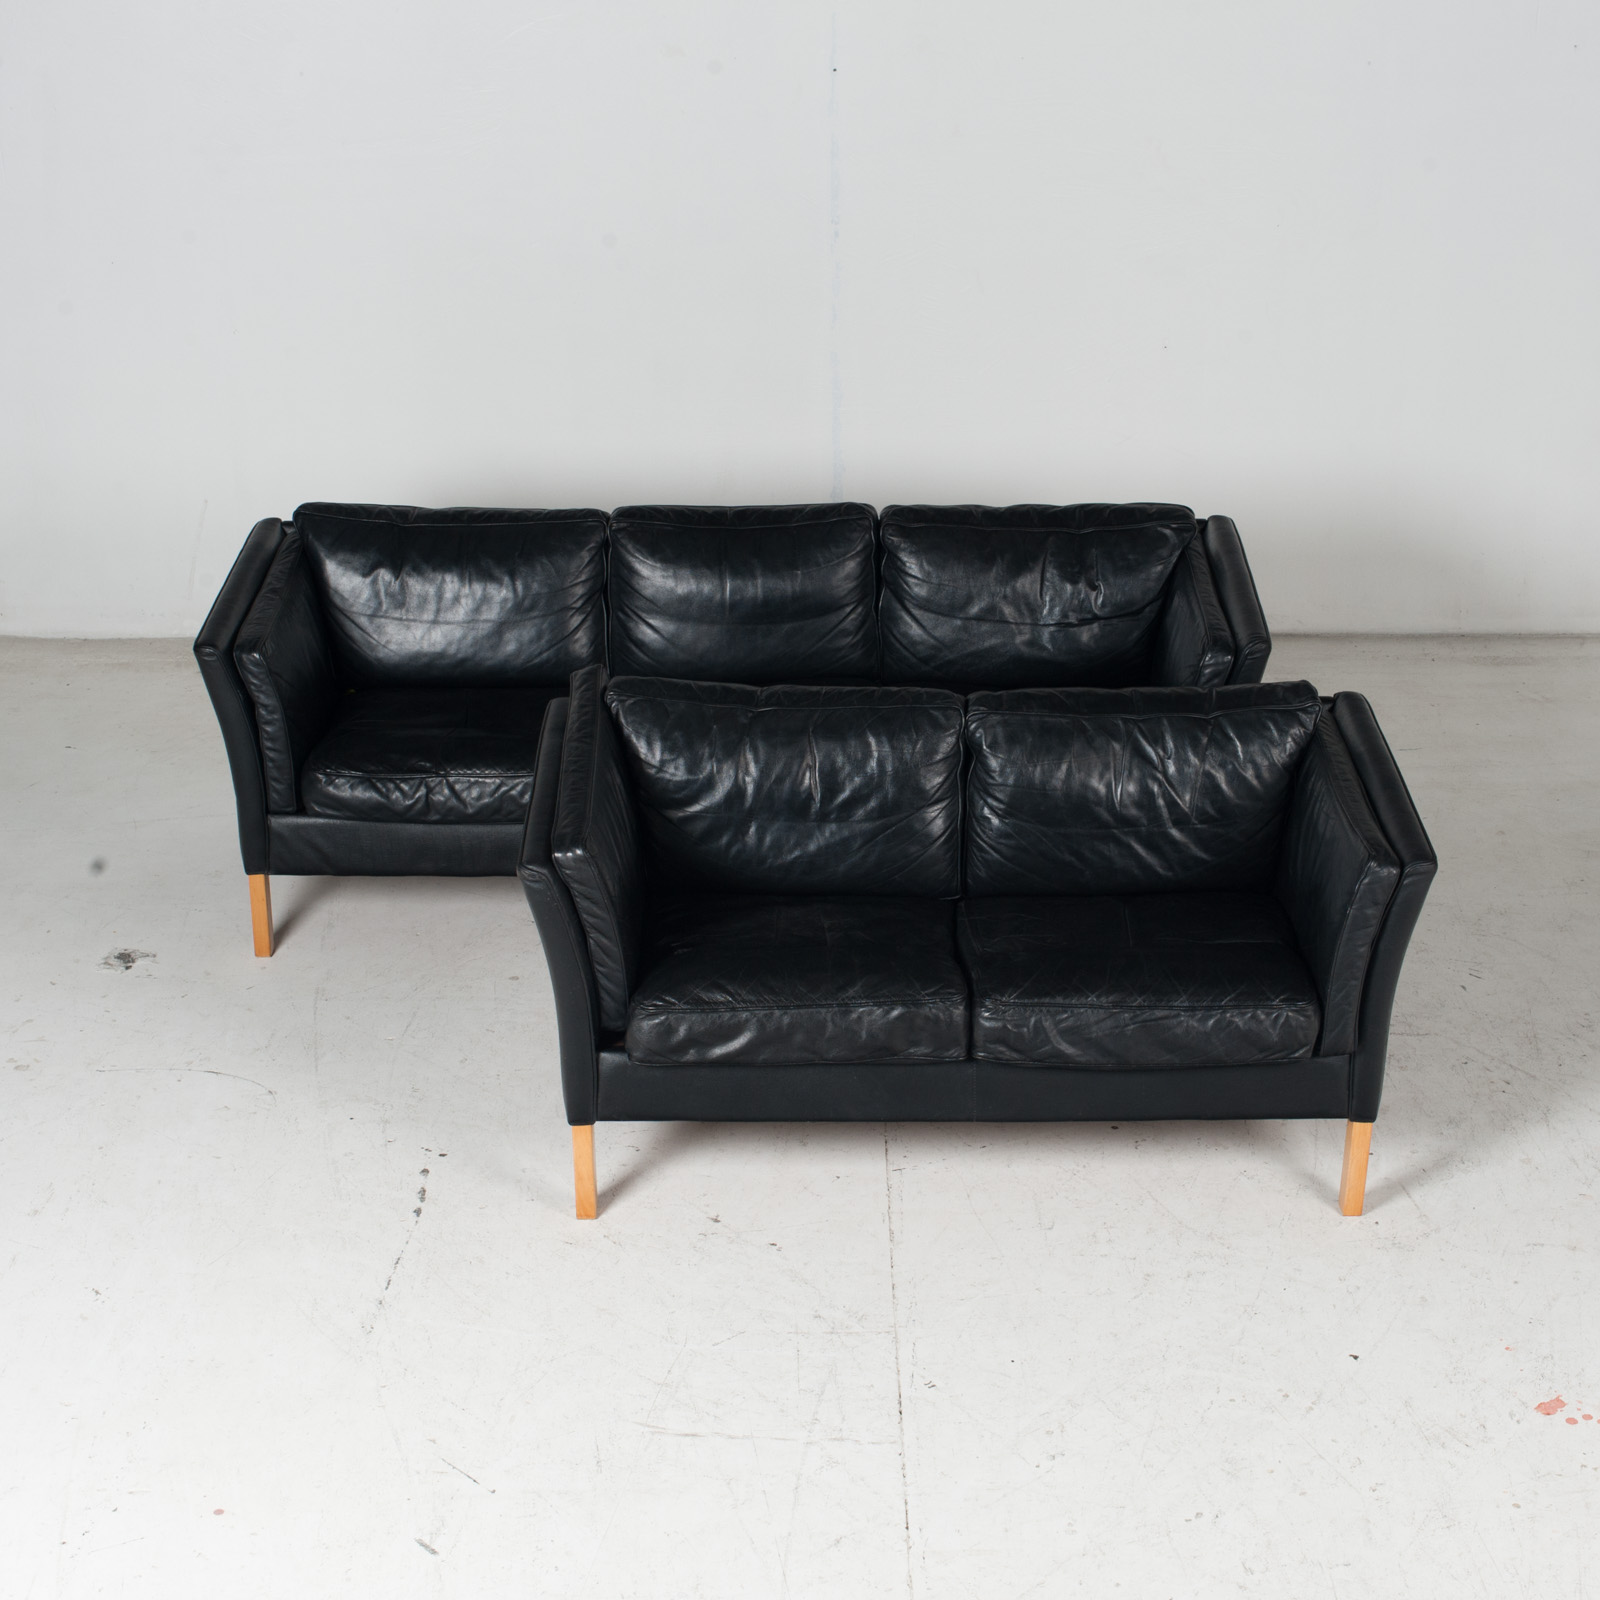 2 Seat Sofa By Stouby In Black Leather With Beech Legs, 1960s, Denmark 1 Copy